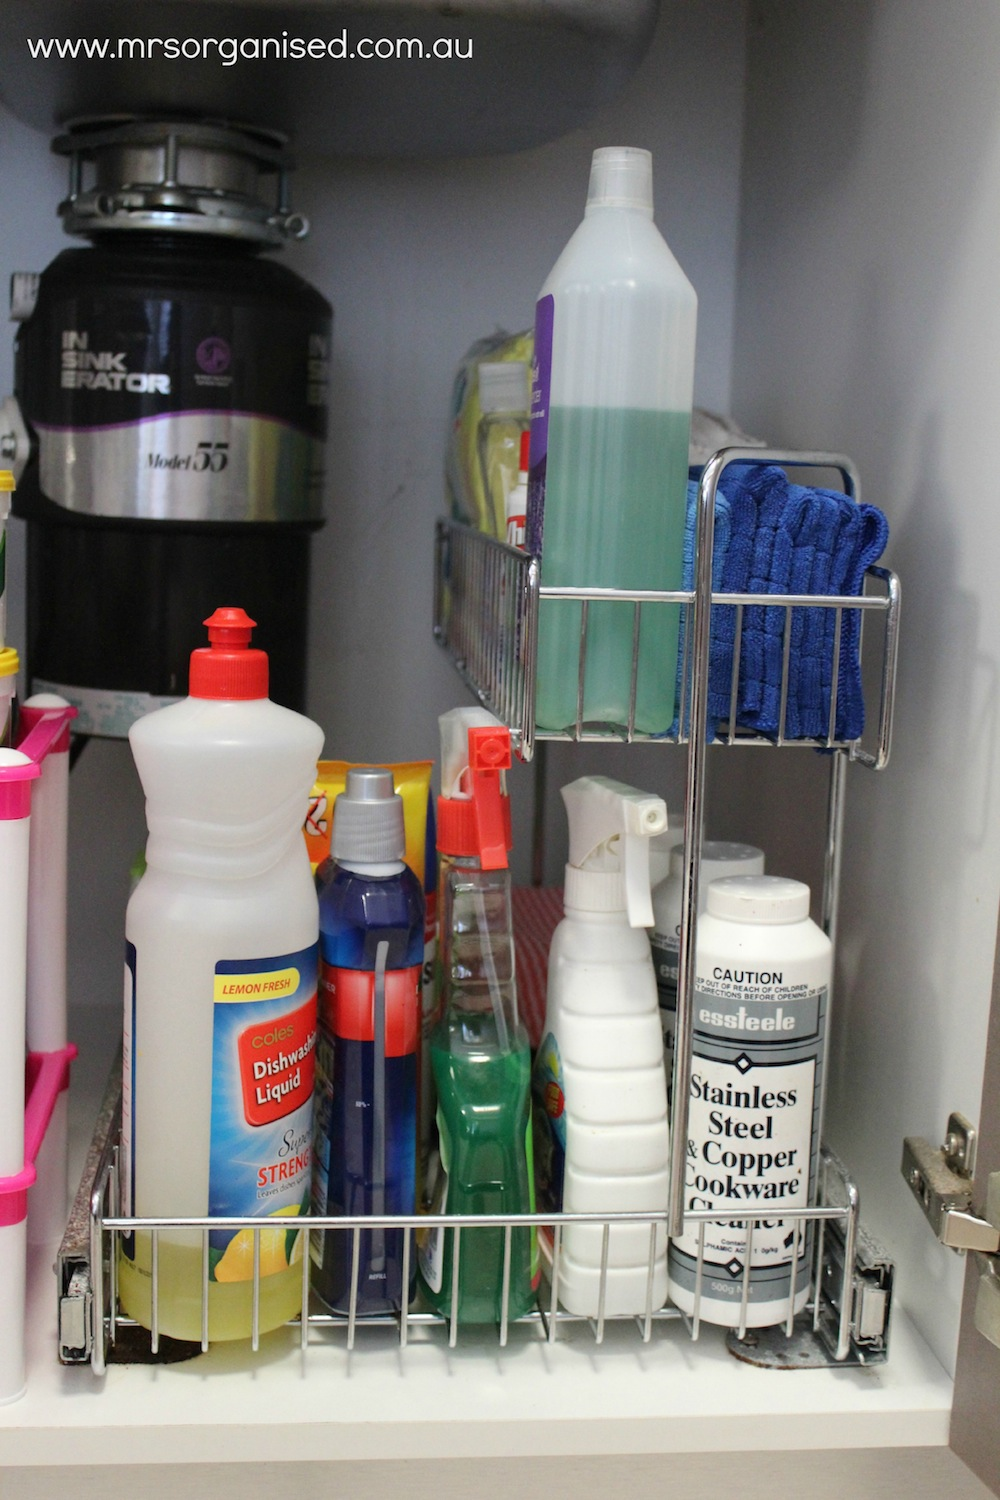 How to Organise Under the Kitchen Sink 004